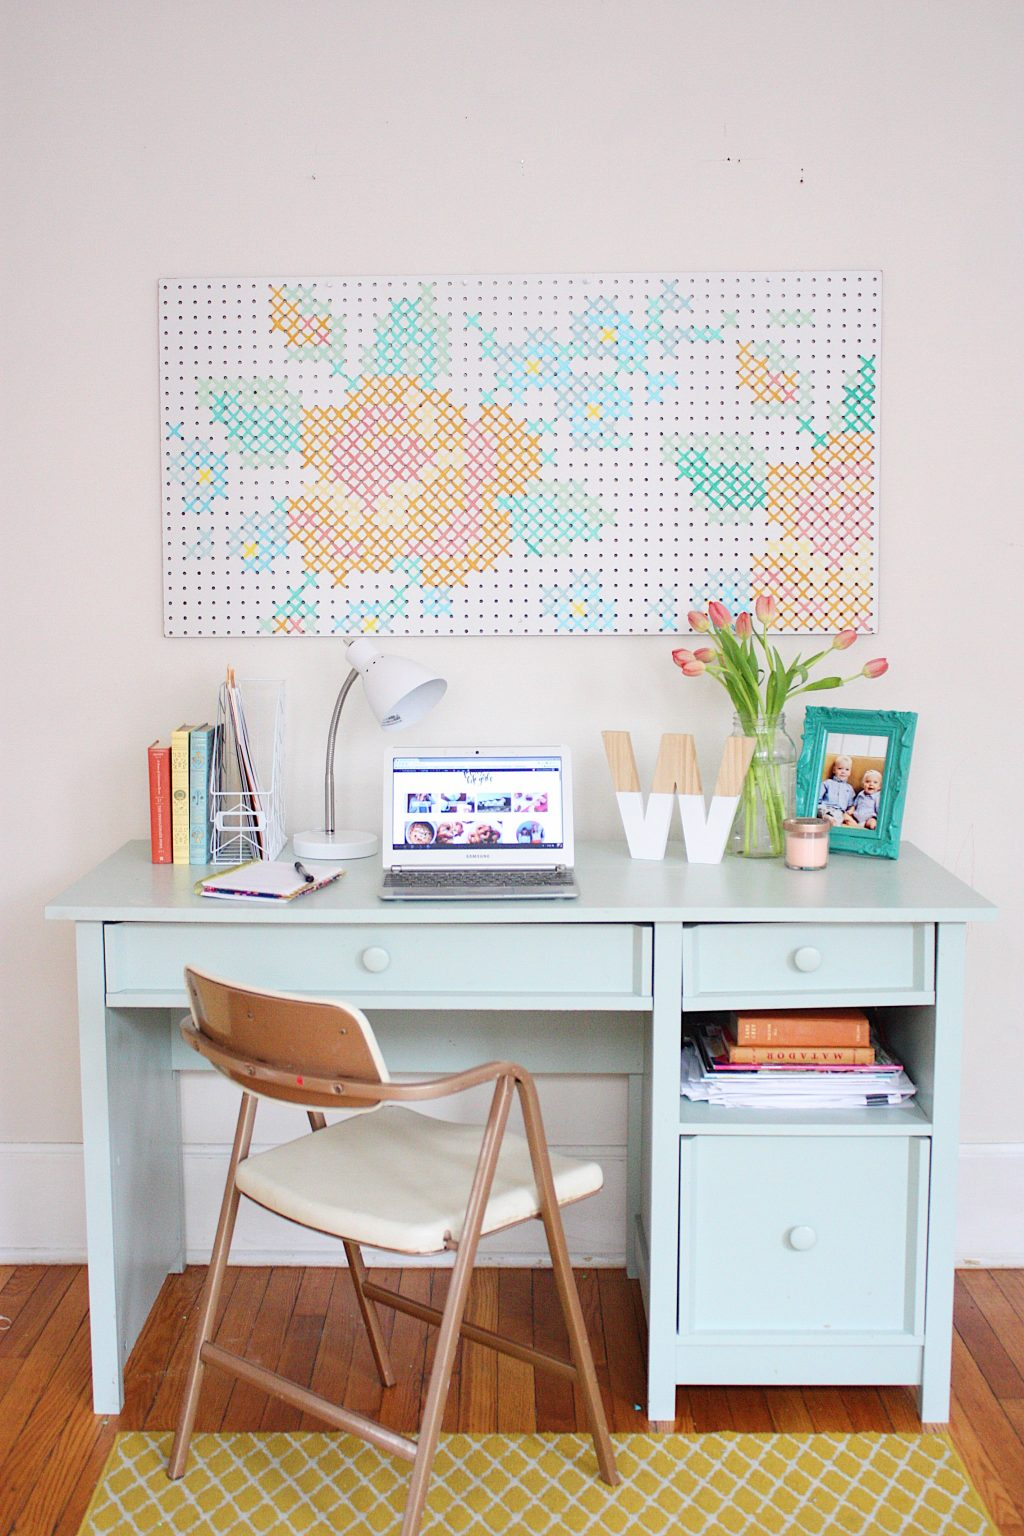 Cross stitch art tutorial featured by top US craft blog, The Pretty Life Girls.